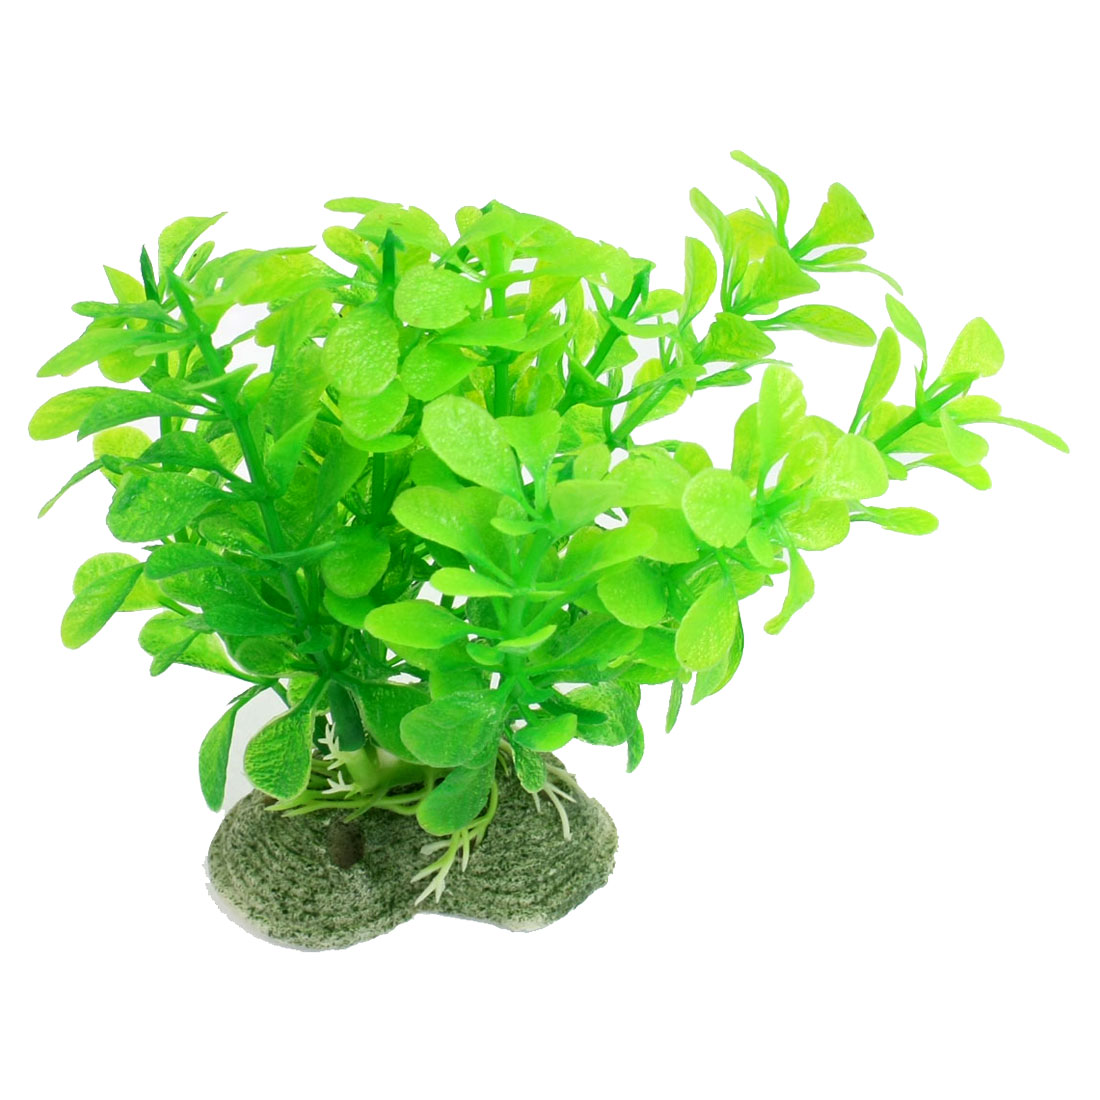 Green Leaves Decor Emulational Water Plant Decoration for Fish Tank